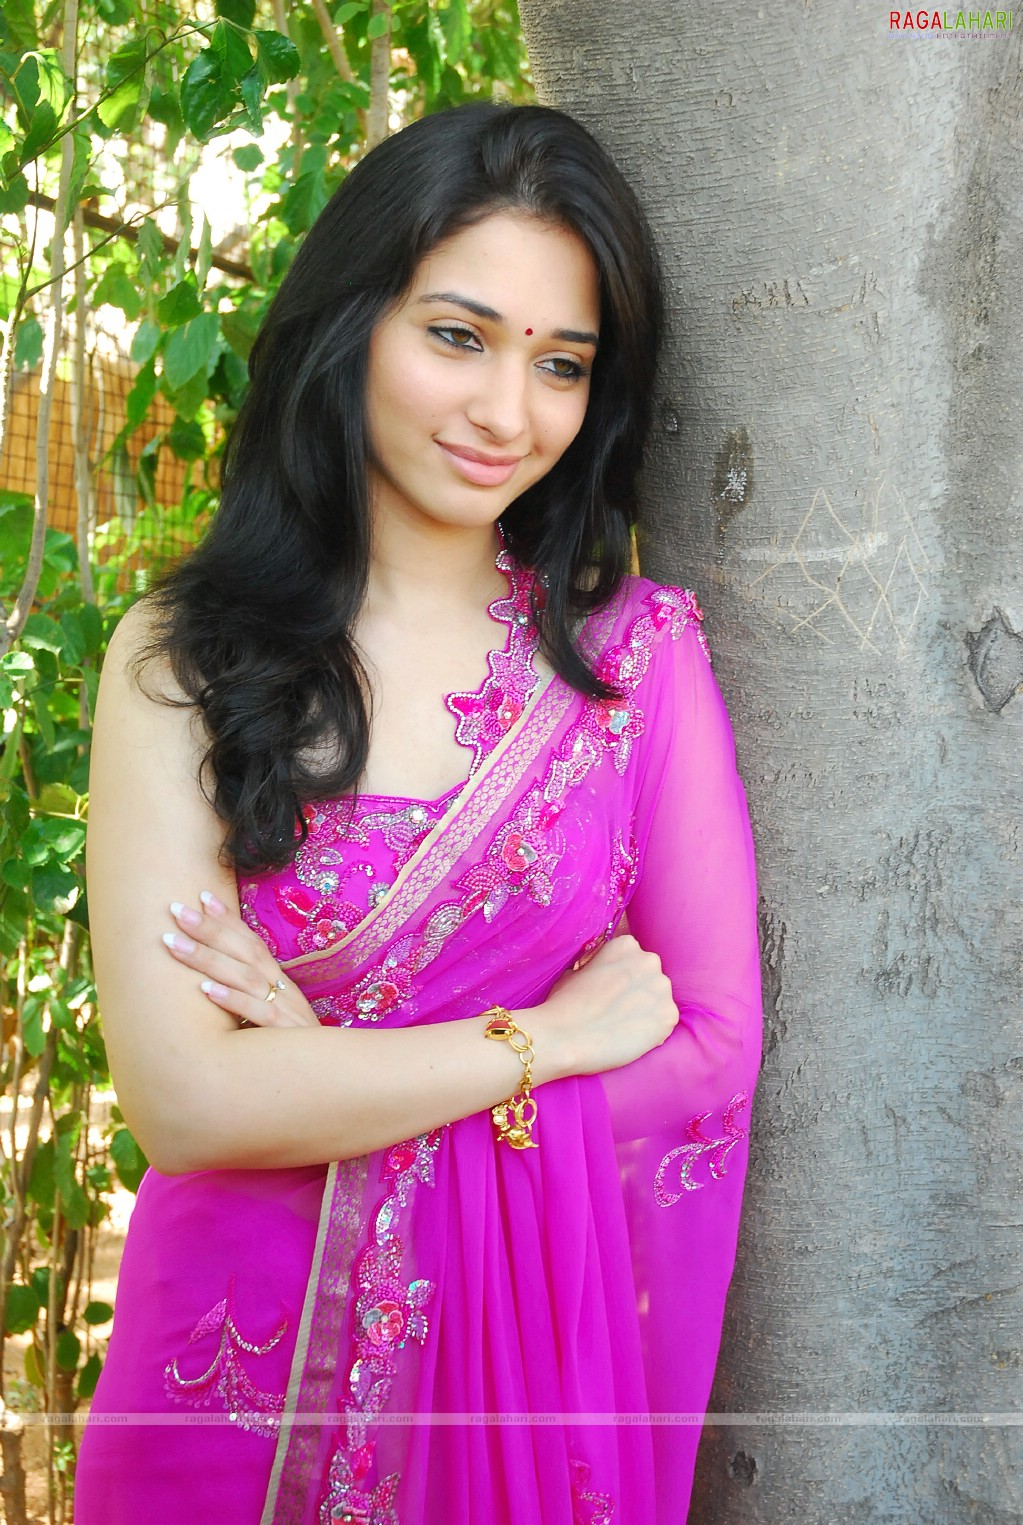 Tamanna Photo Gallery: Film Actress Tamanna Bhatia: Cute Tamanna Sexy Saree Photo